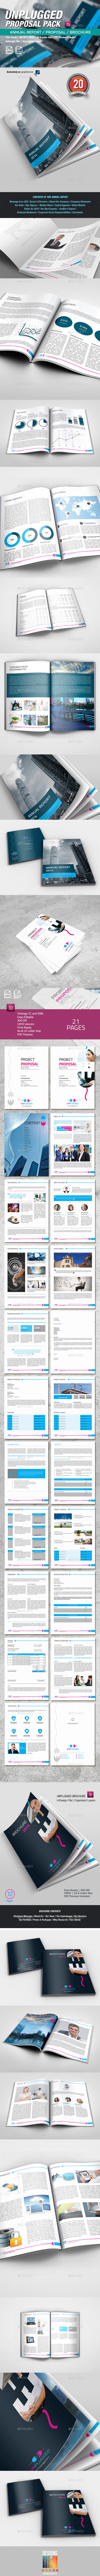 GraphicRiver Unplugged Multipurpose Proposal Pack 8829133